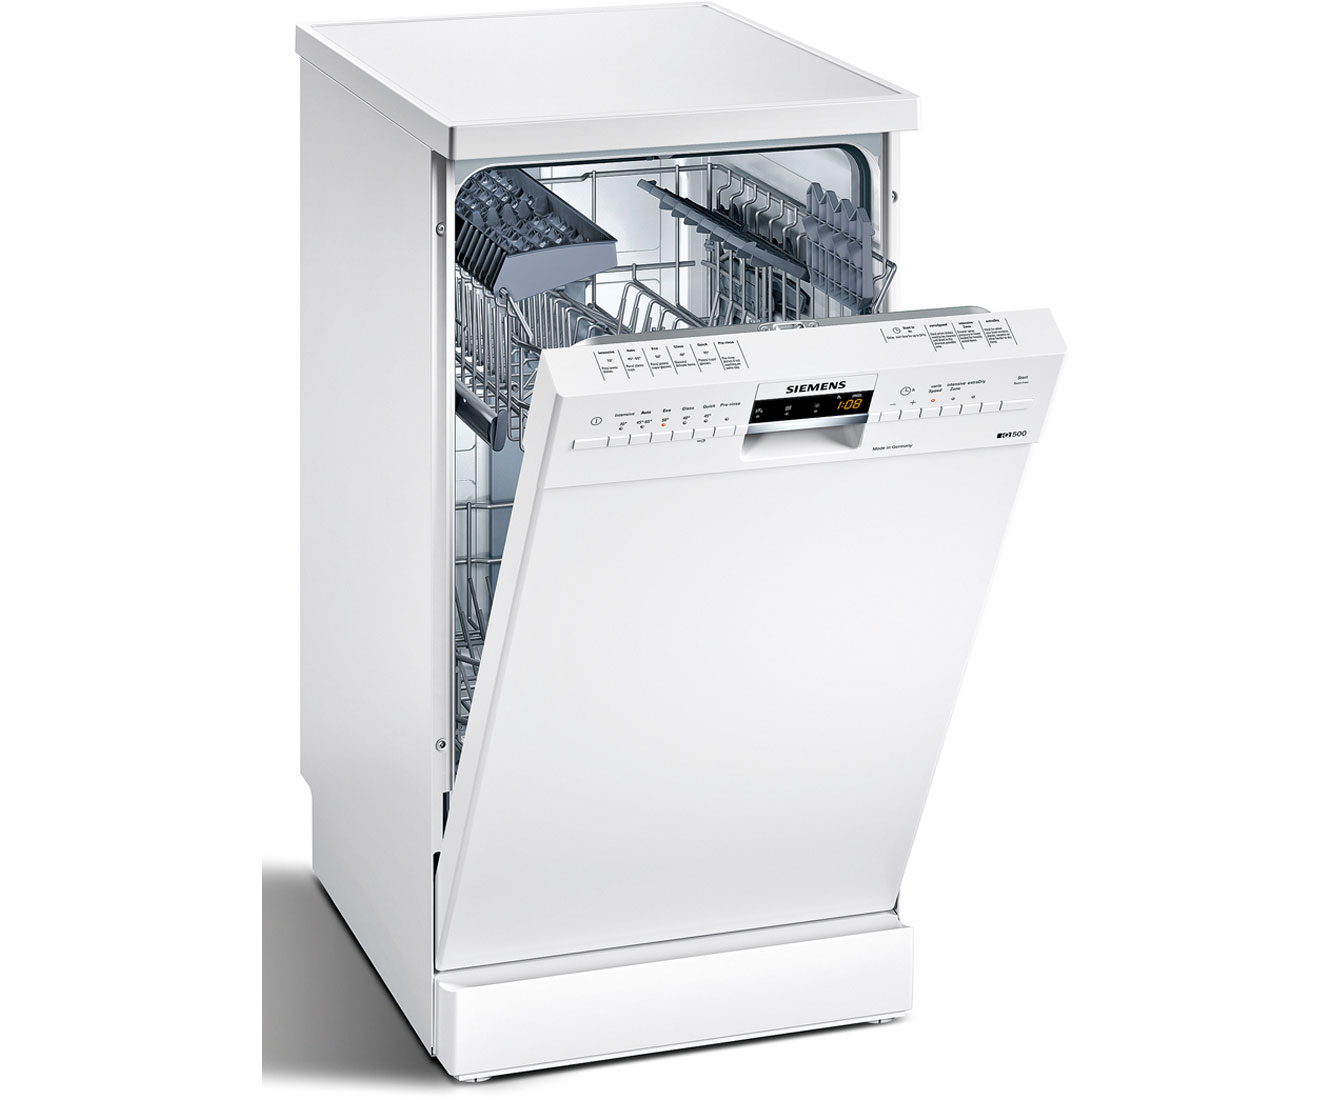 Siemens IQ500 SR26M231GB Free Standing Slimline Dishwasher in White